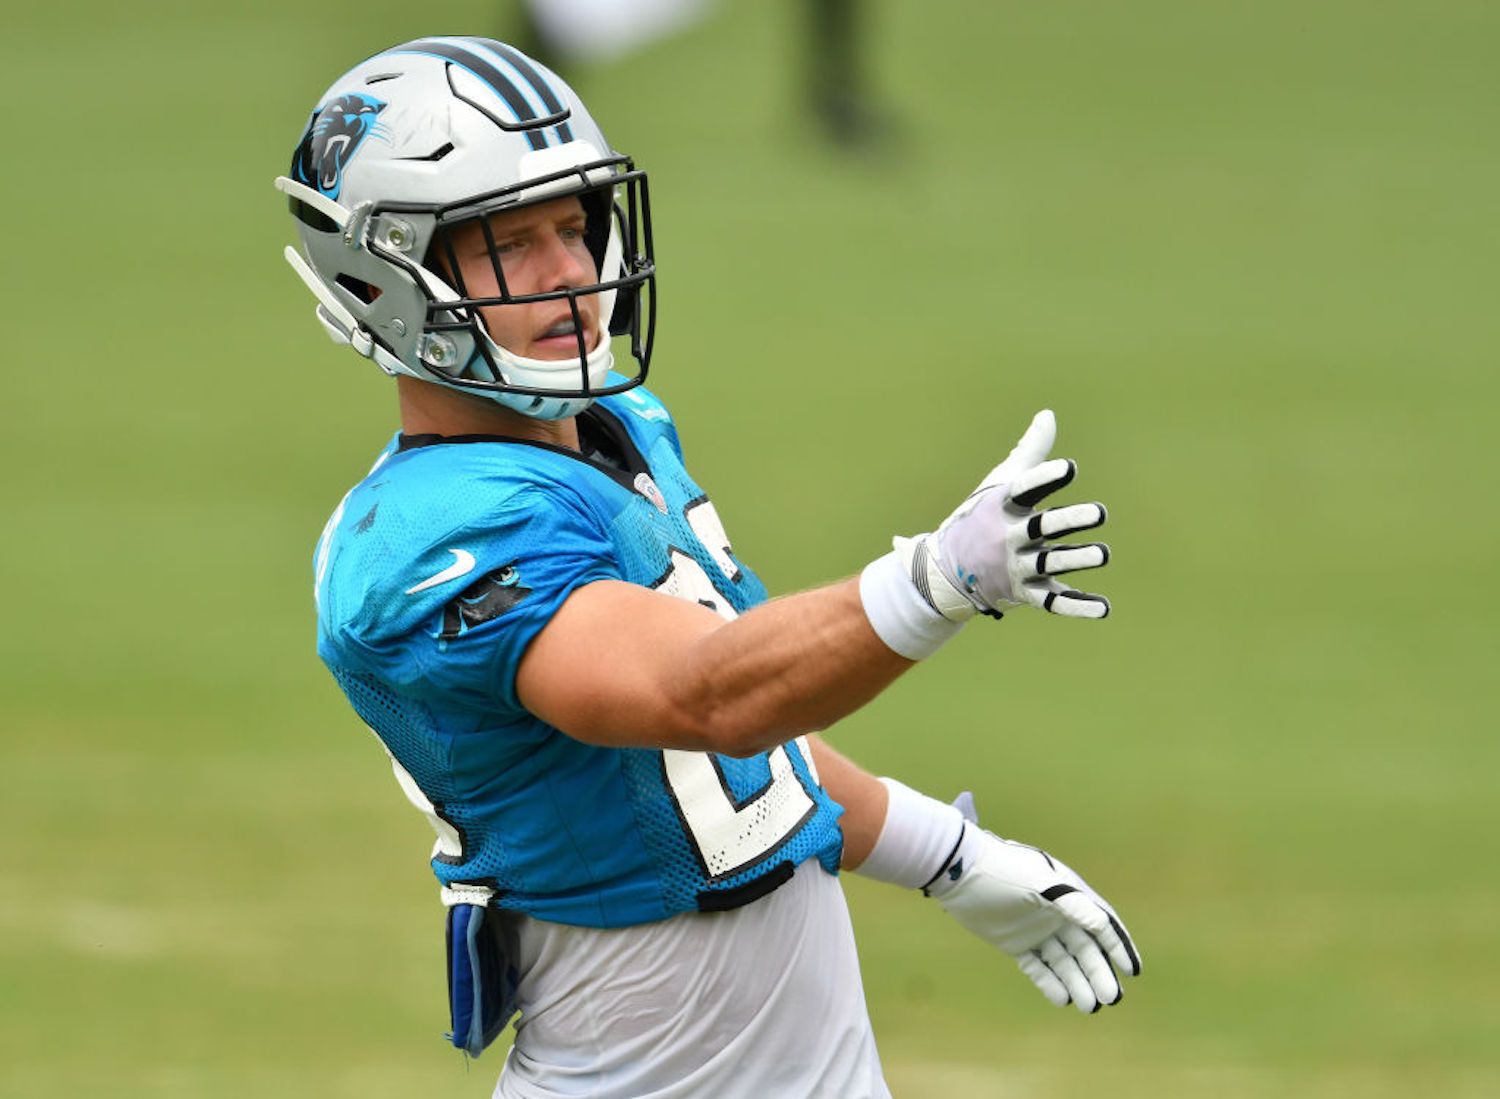 Christian McCaffrey hasn't played for the Panthers since Week 2, but he might finally get back on the field this Sunday against the Chiefs. McCaffrey hasn't played since Week 2 because of a high ankle sprain, but he might finally get back on the field this Sunday.